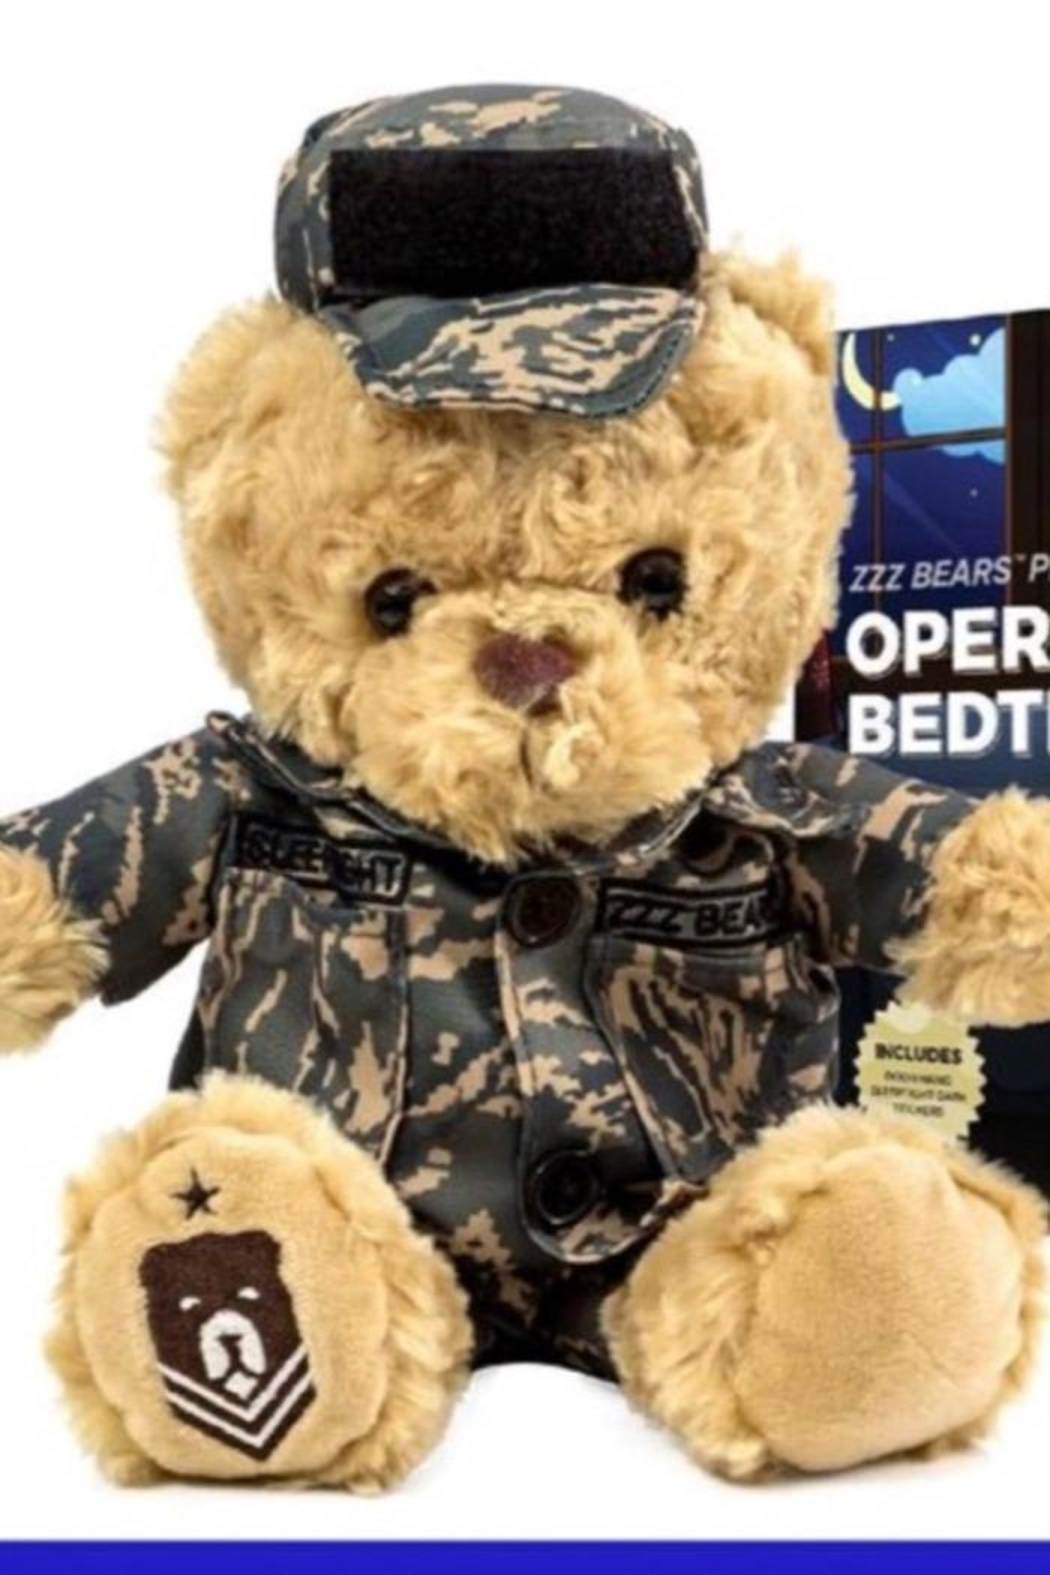 ZZZ Bears Airman Sleeptight Air Force Teddy Bear With Sleep System + Storybook - Main Image